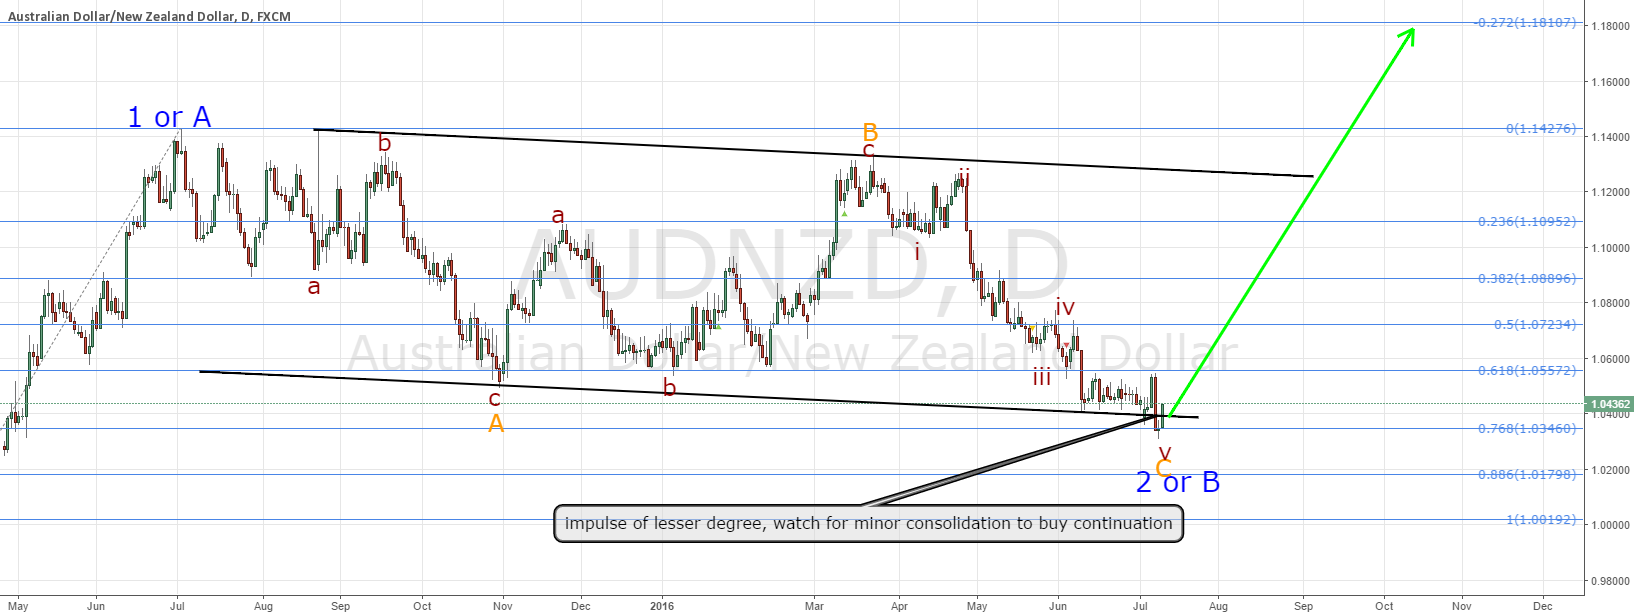 AUDNZD, about to start major move